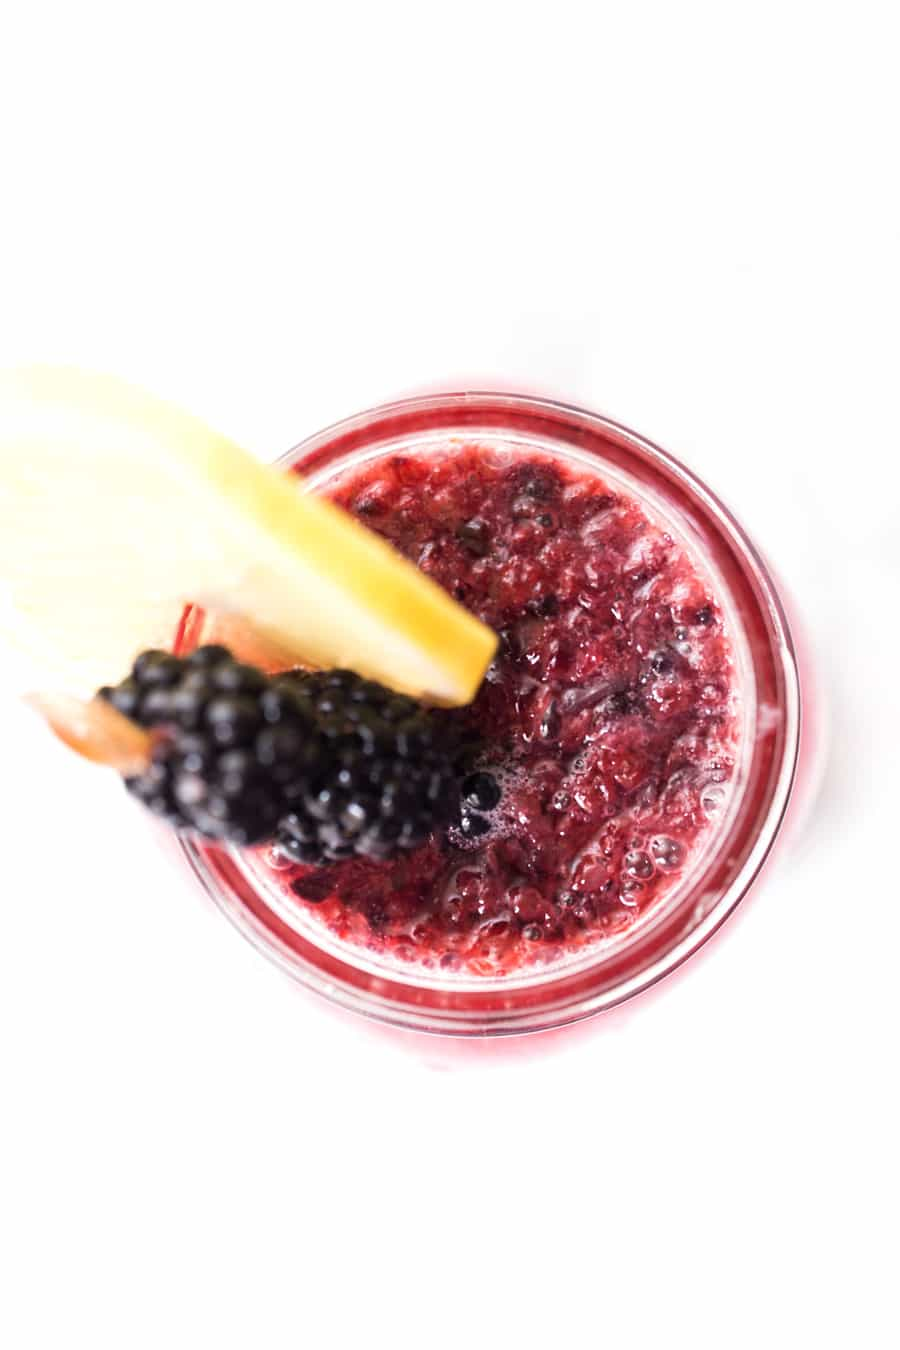 How to make SPARKLING BLACKBERRY LEMONADE with just 4 simple ingredients!